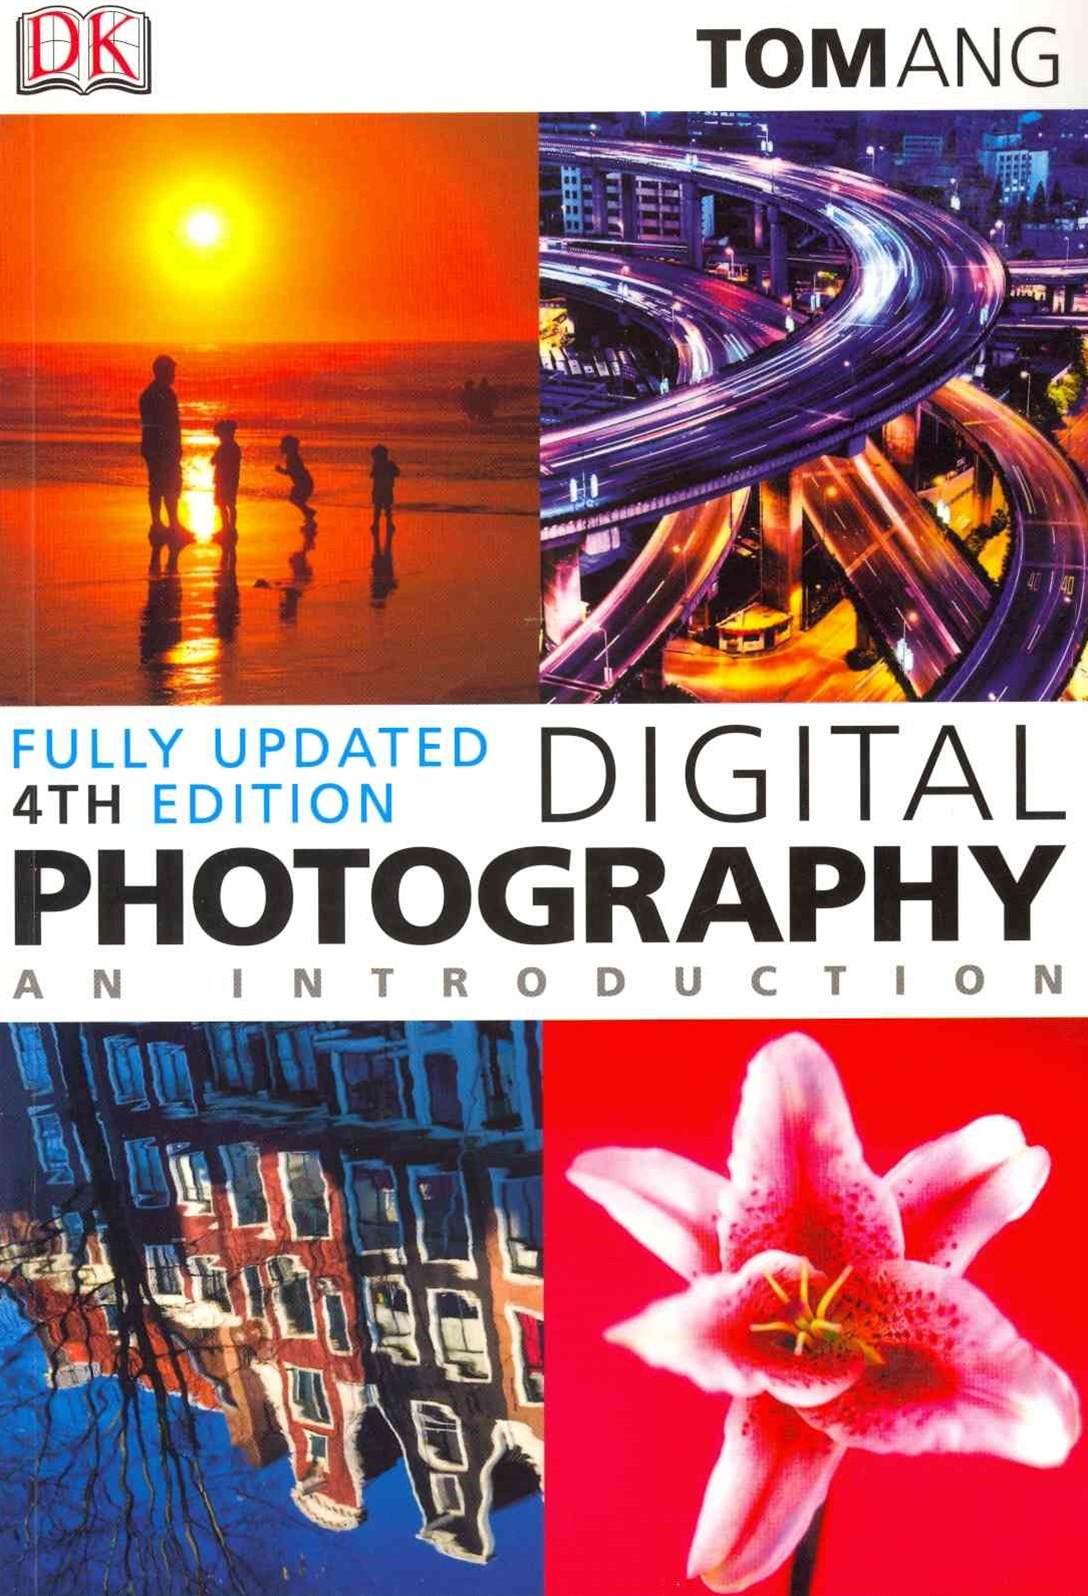 Digital Photography: An Introduction